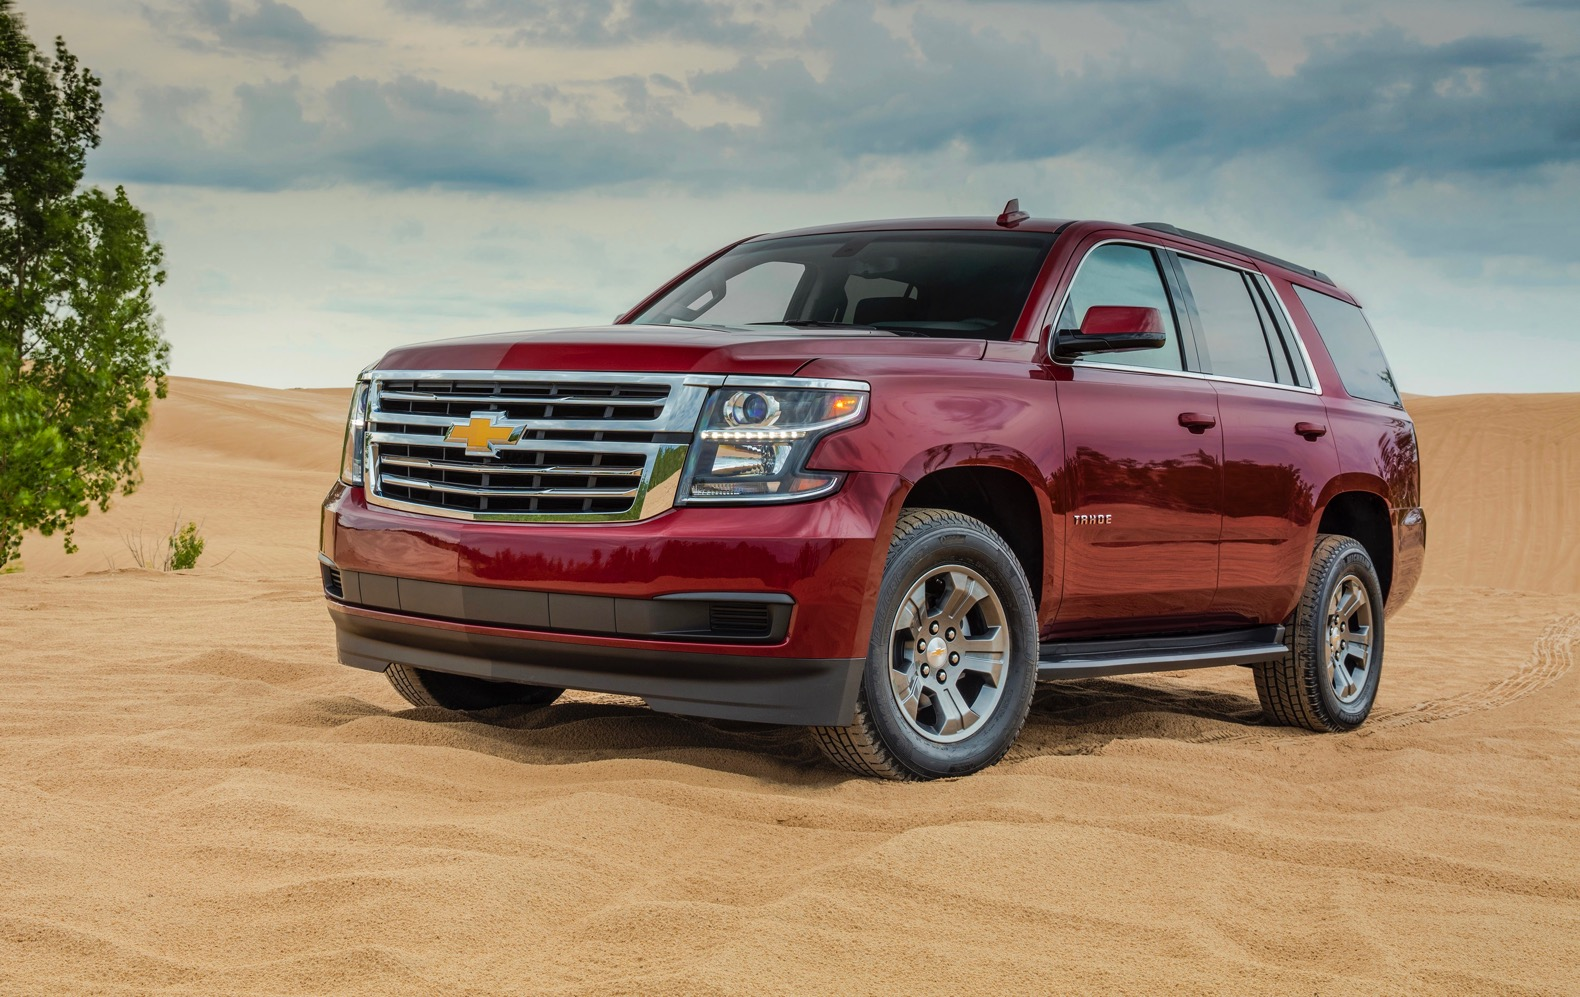 You can't find a better girl car than the Chevrolet Tahoe.